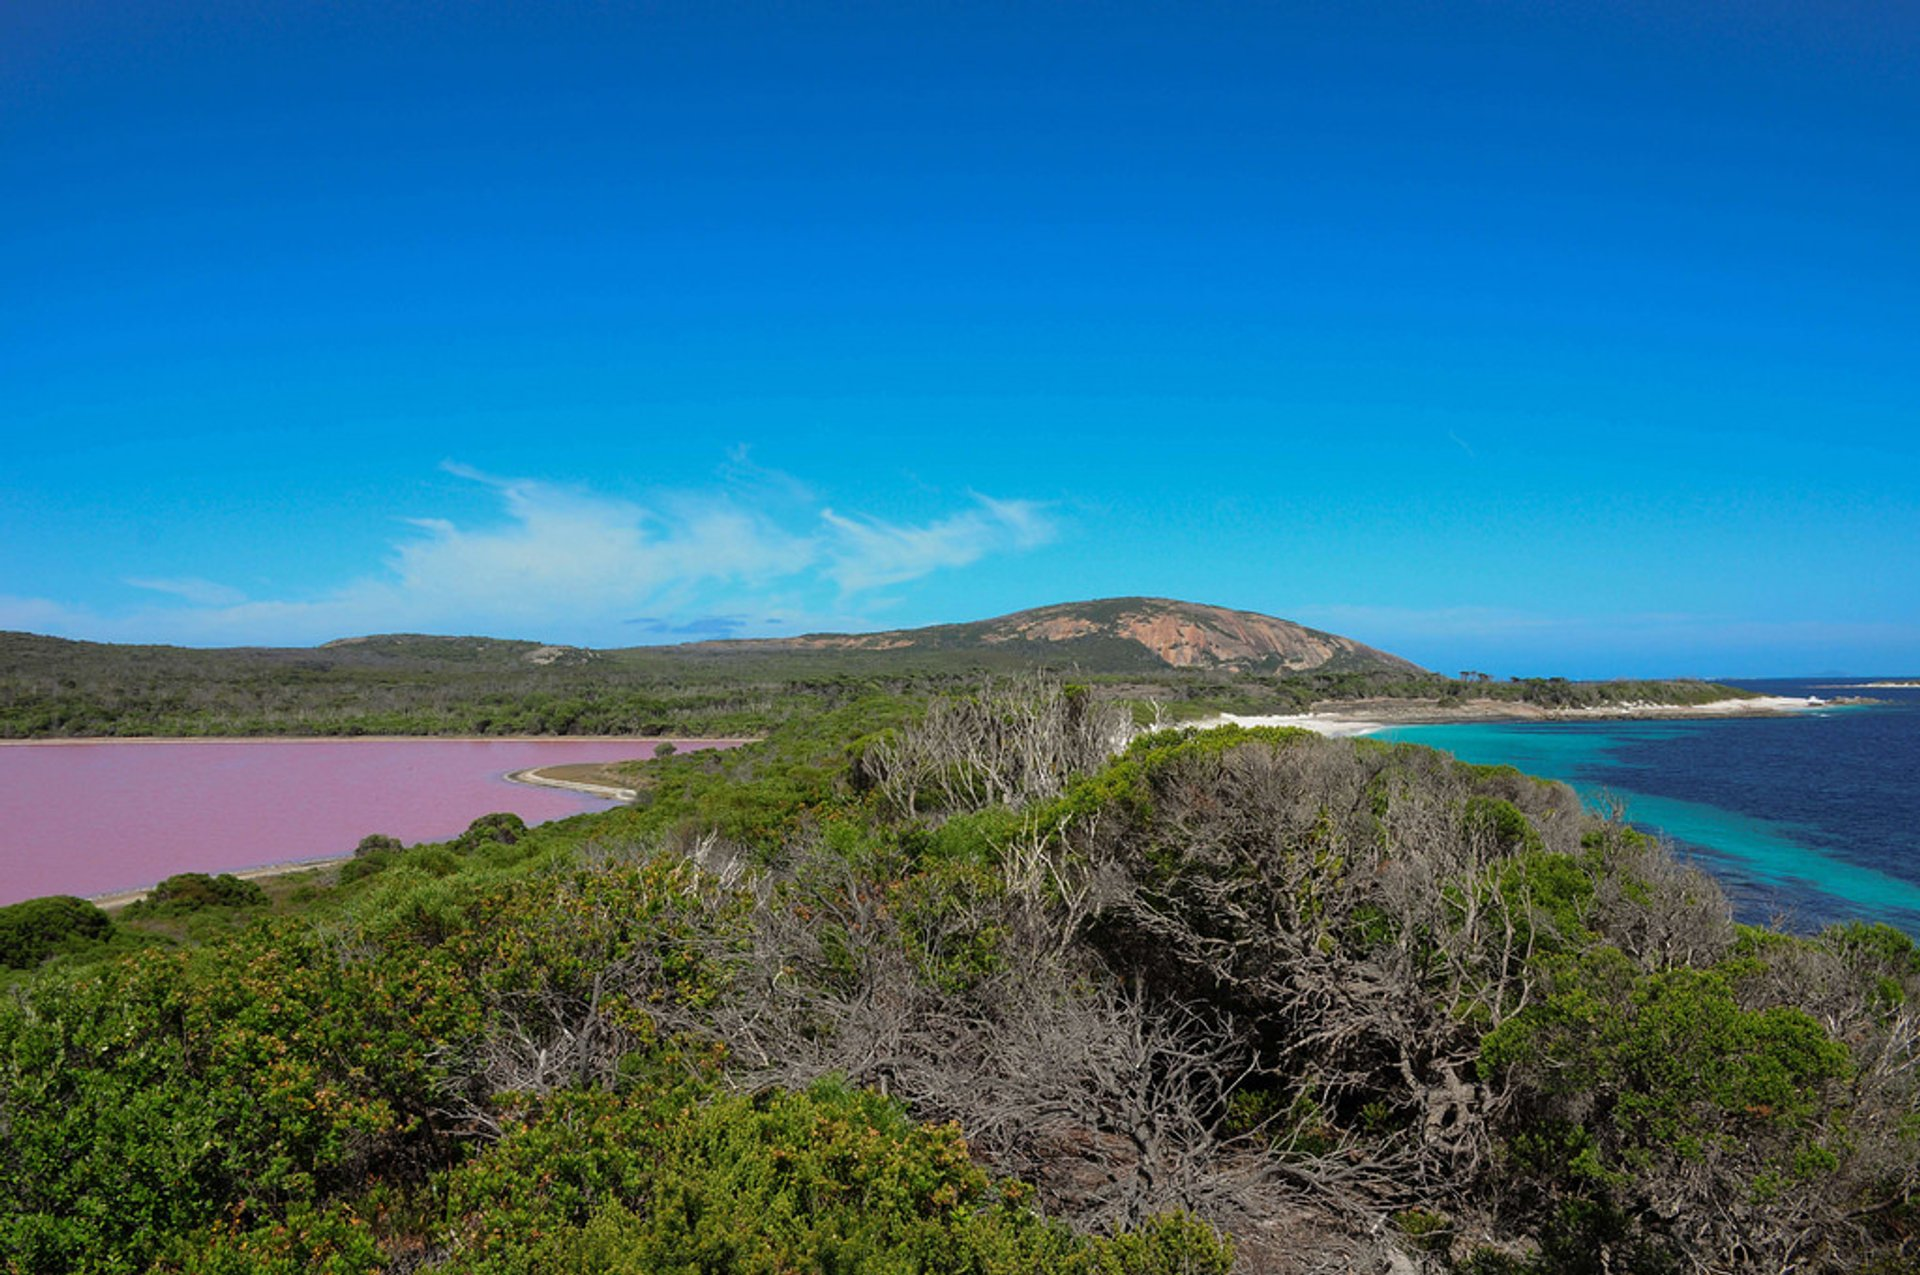 Lake Hillier in Western Australia - Best Season